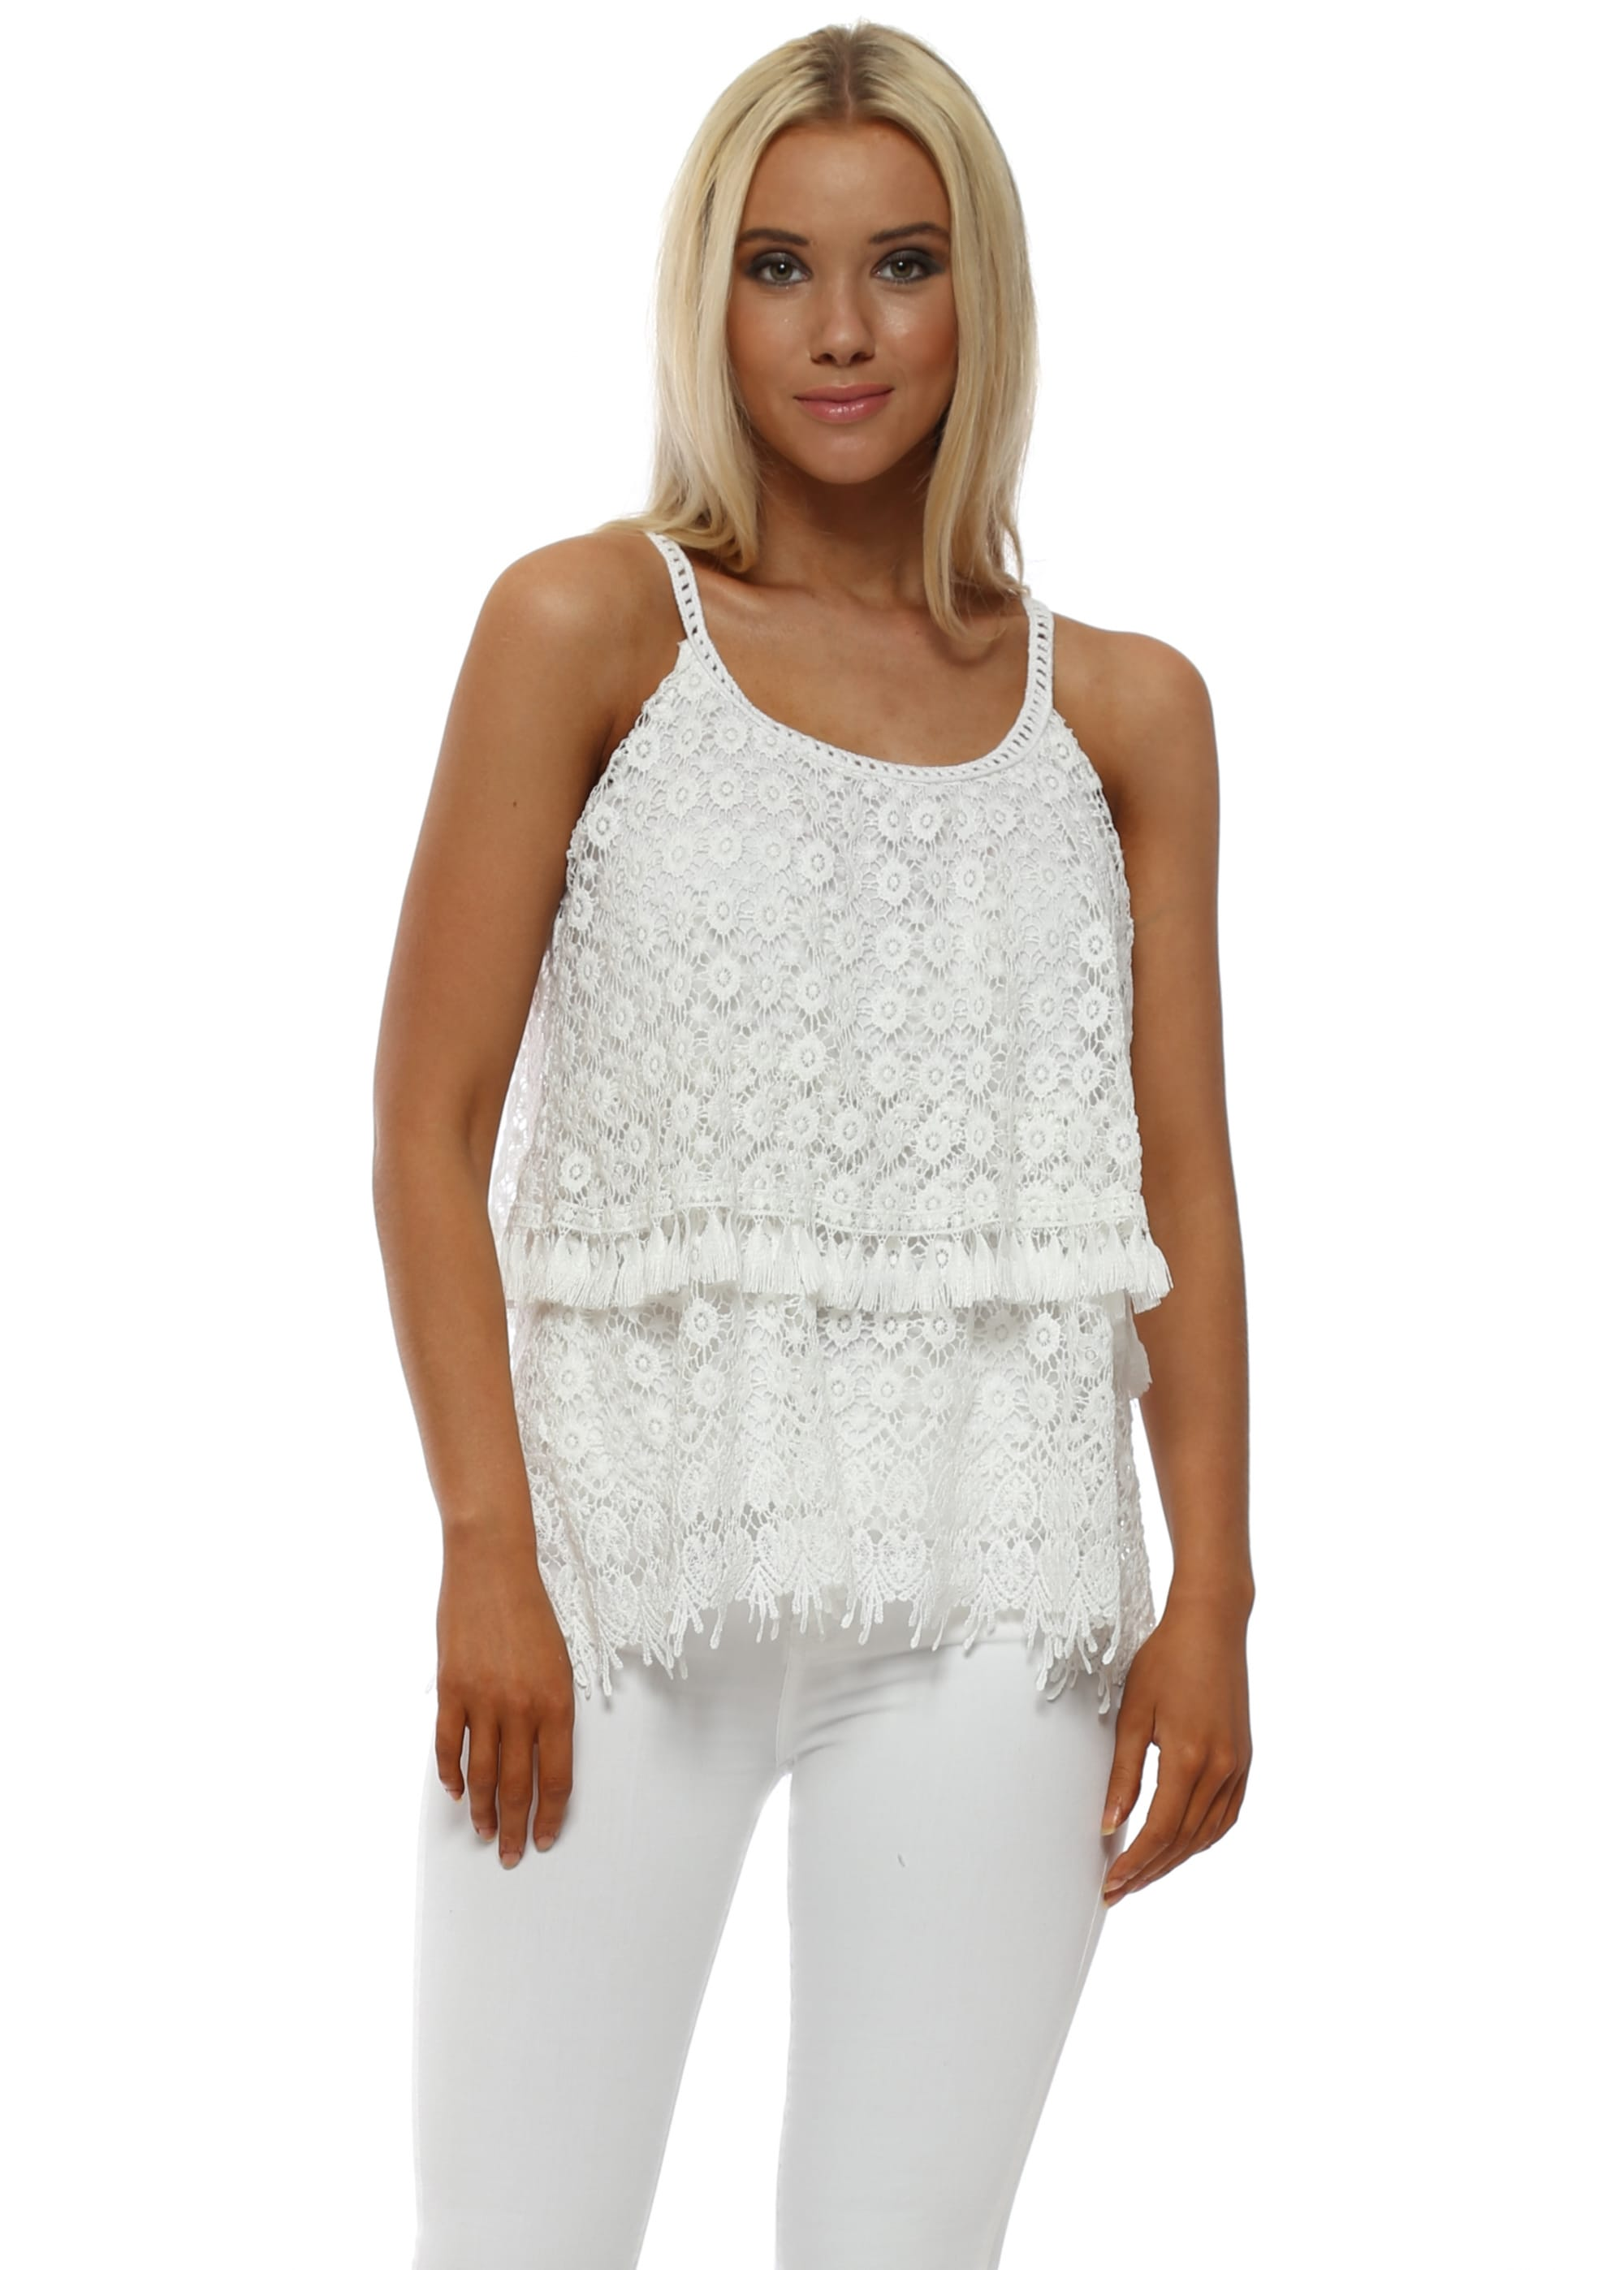 b534e7dc1b791f Made In italy White Lace Strappy Top